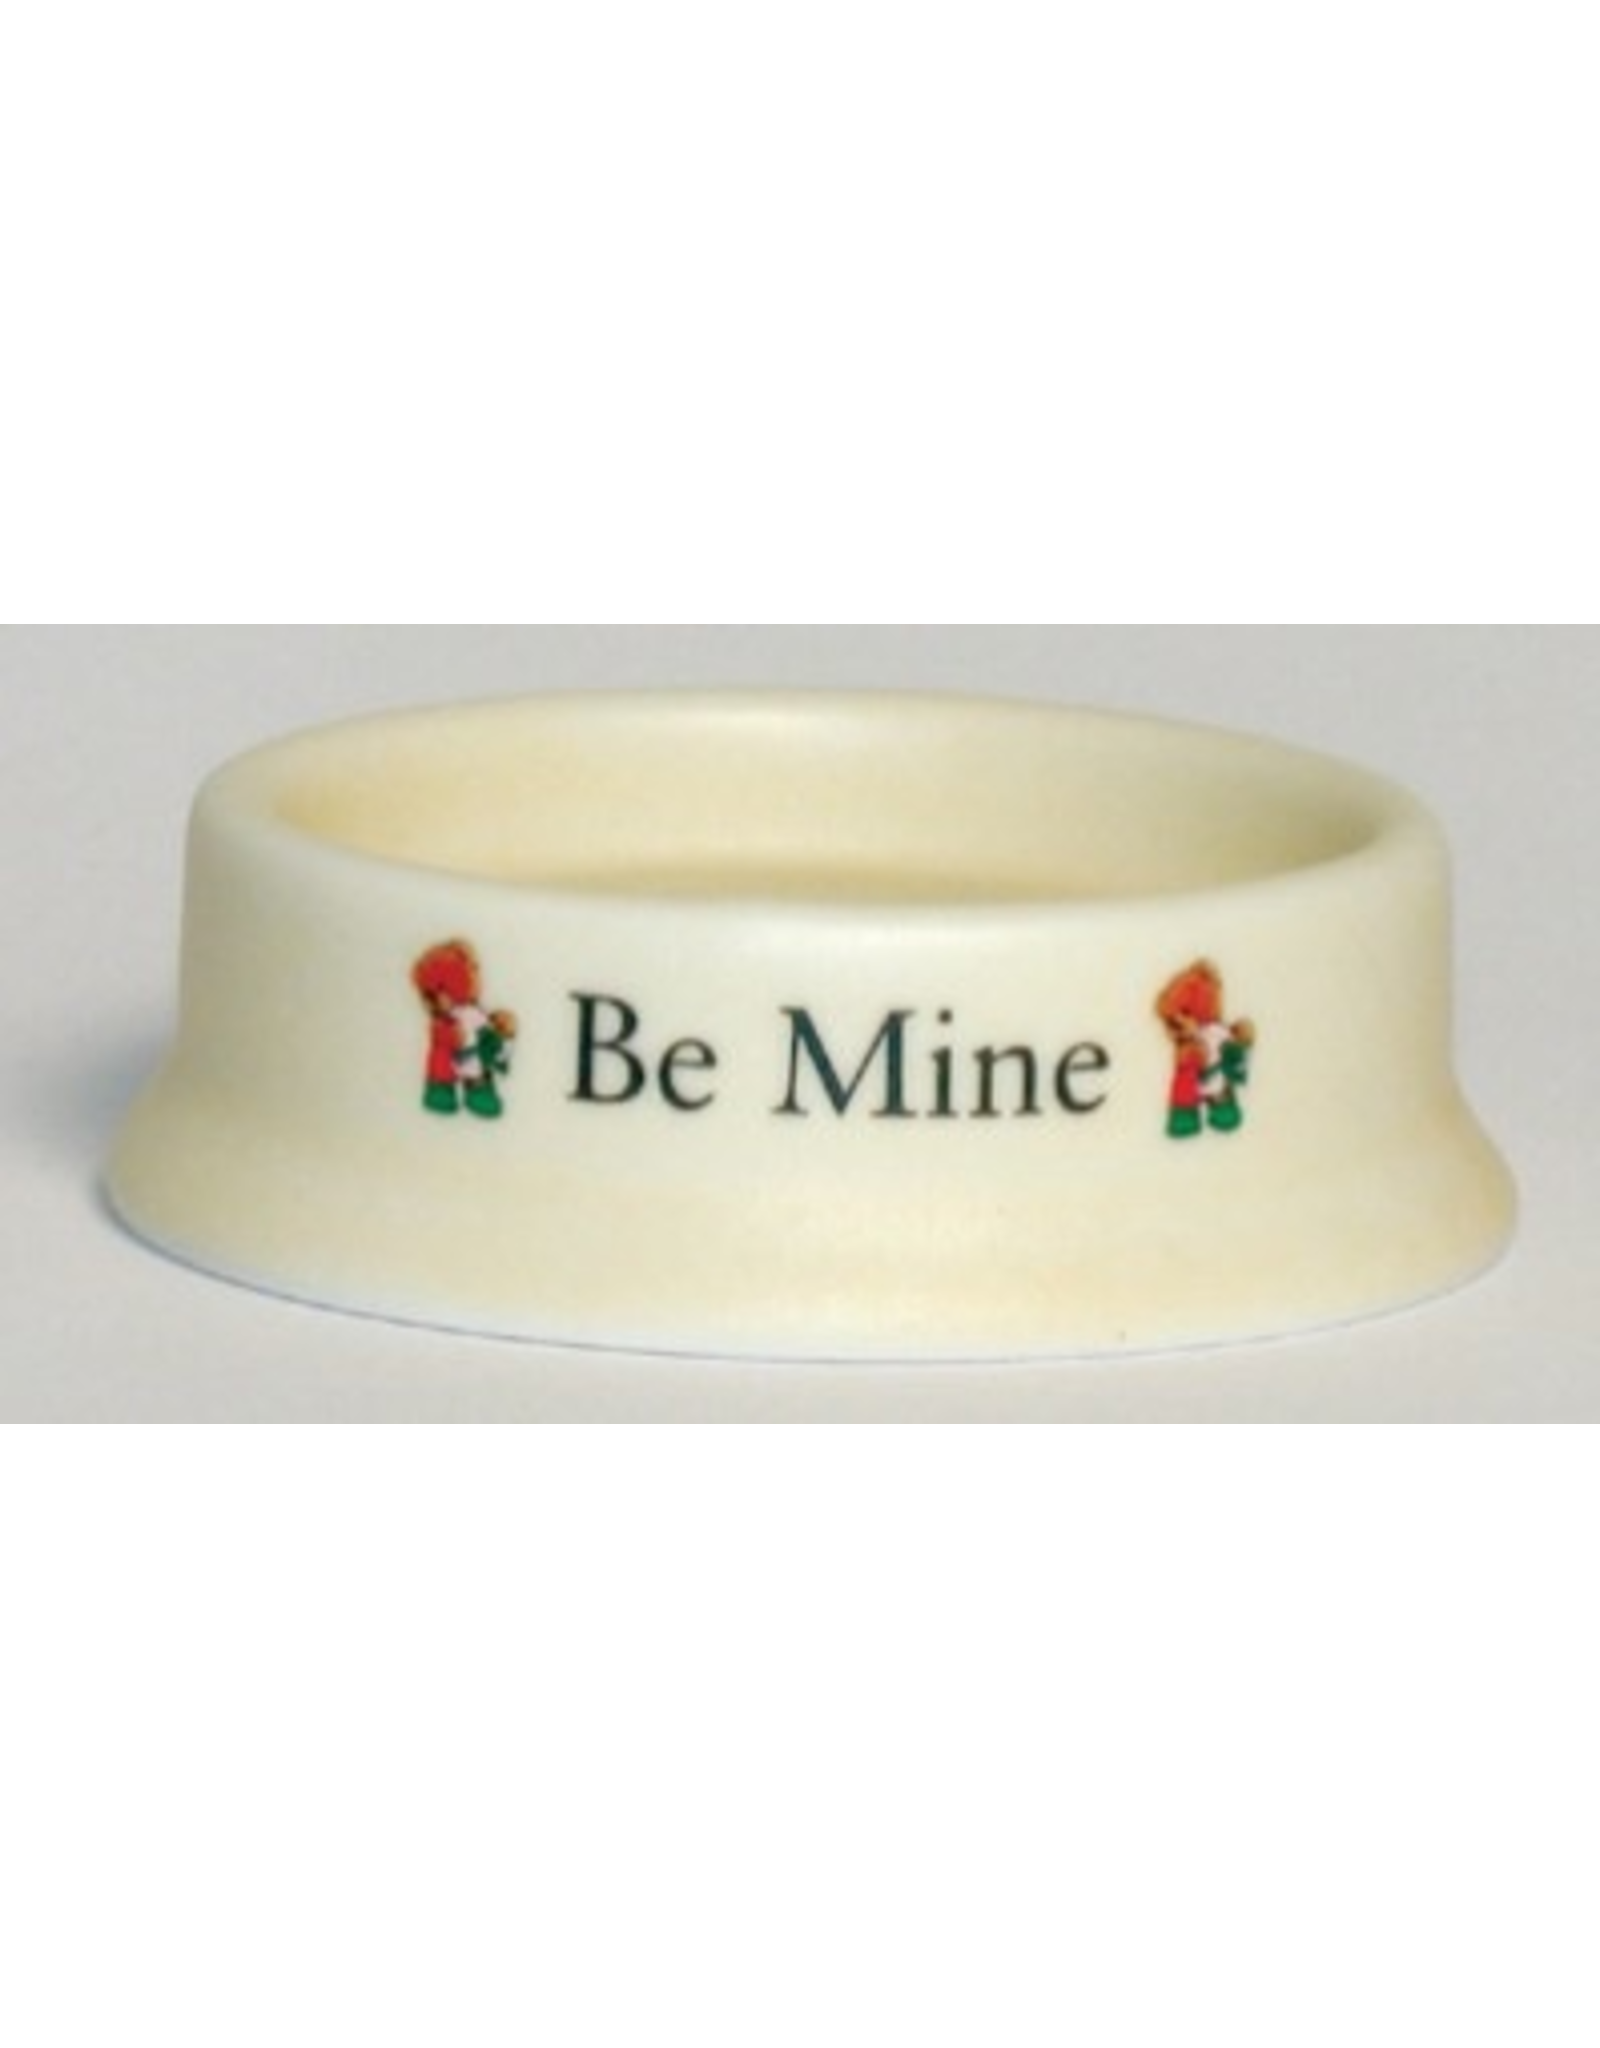 Be Mine Occassion Base 827169 Hummel